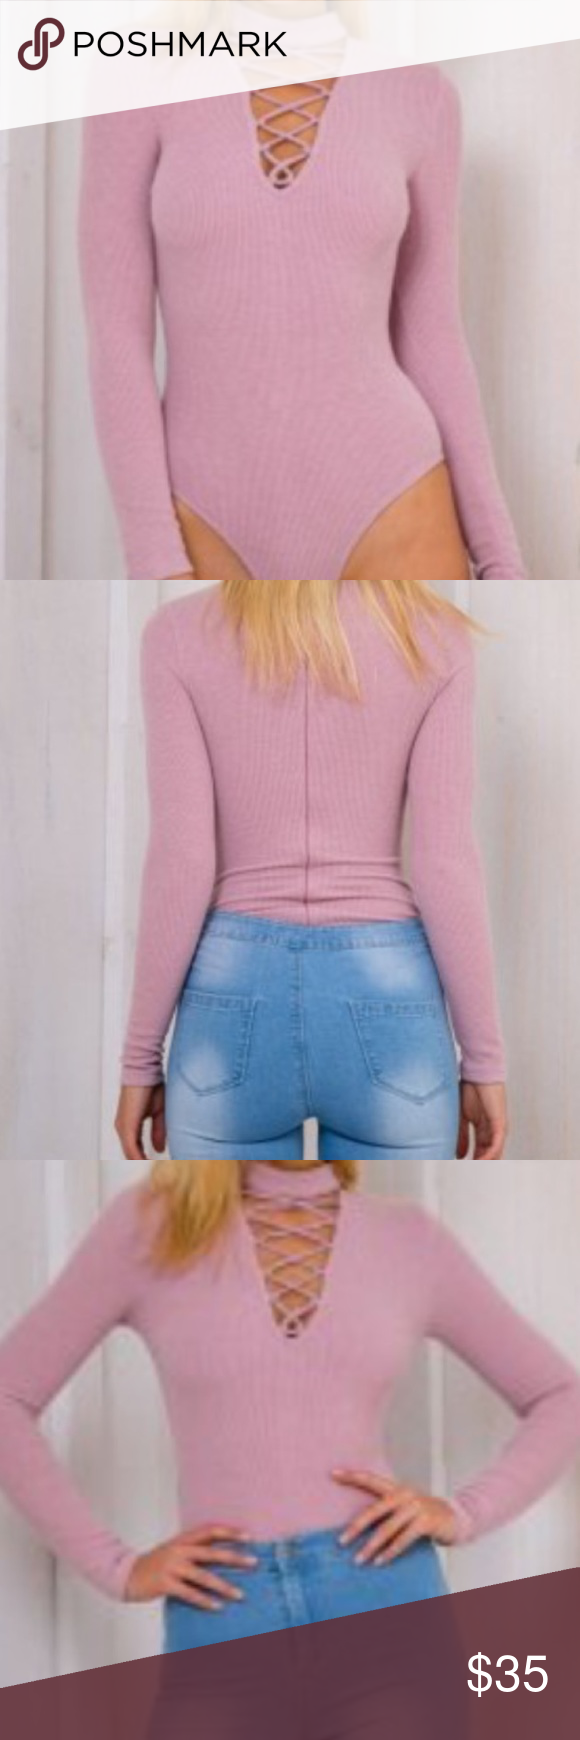 body suit A ribbed texture long sleeve body suit. It is light purple, and stretc…